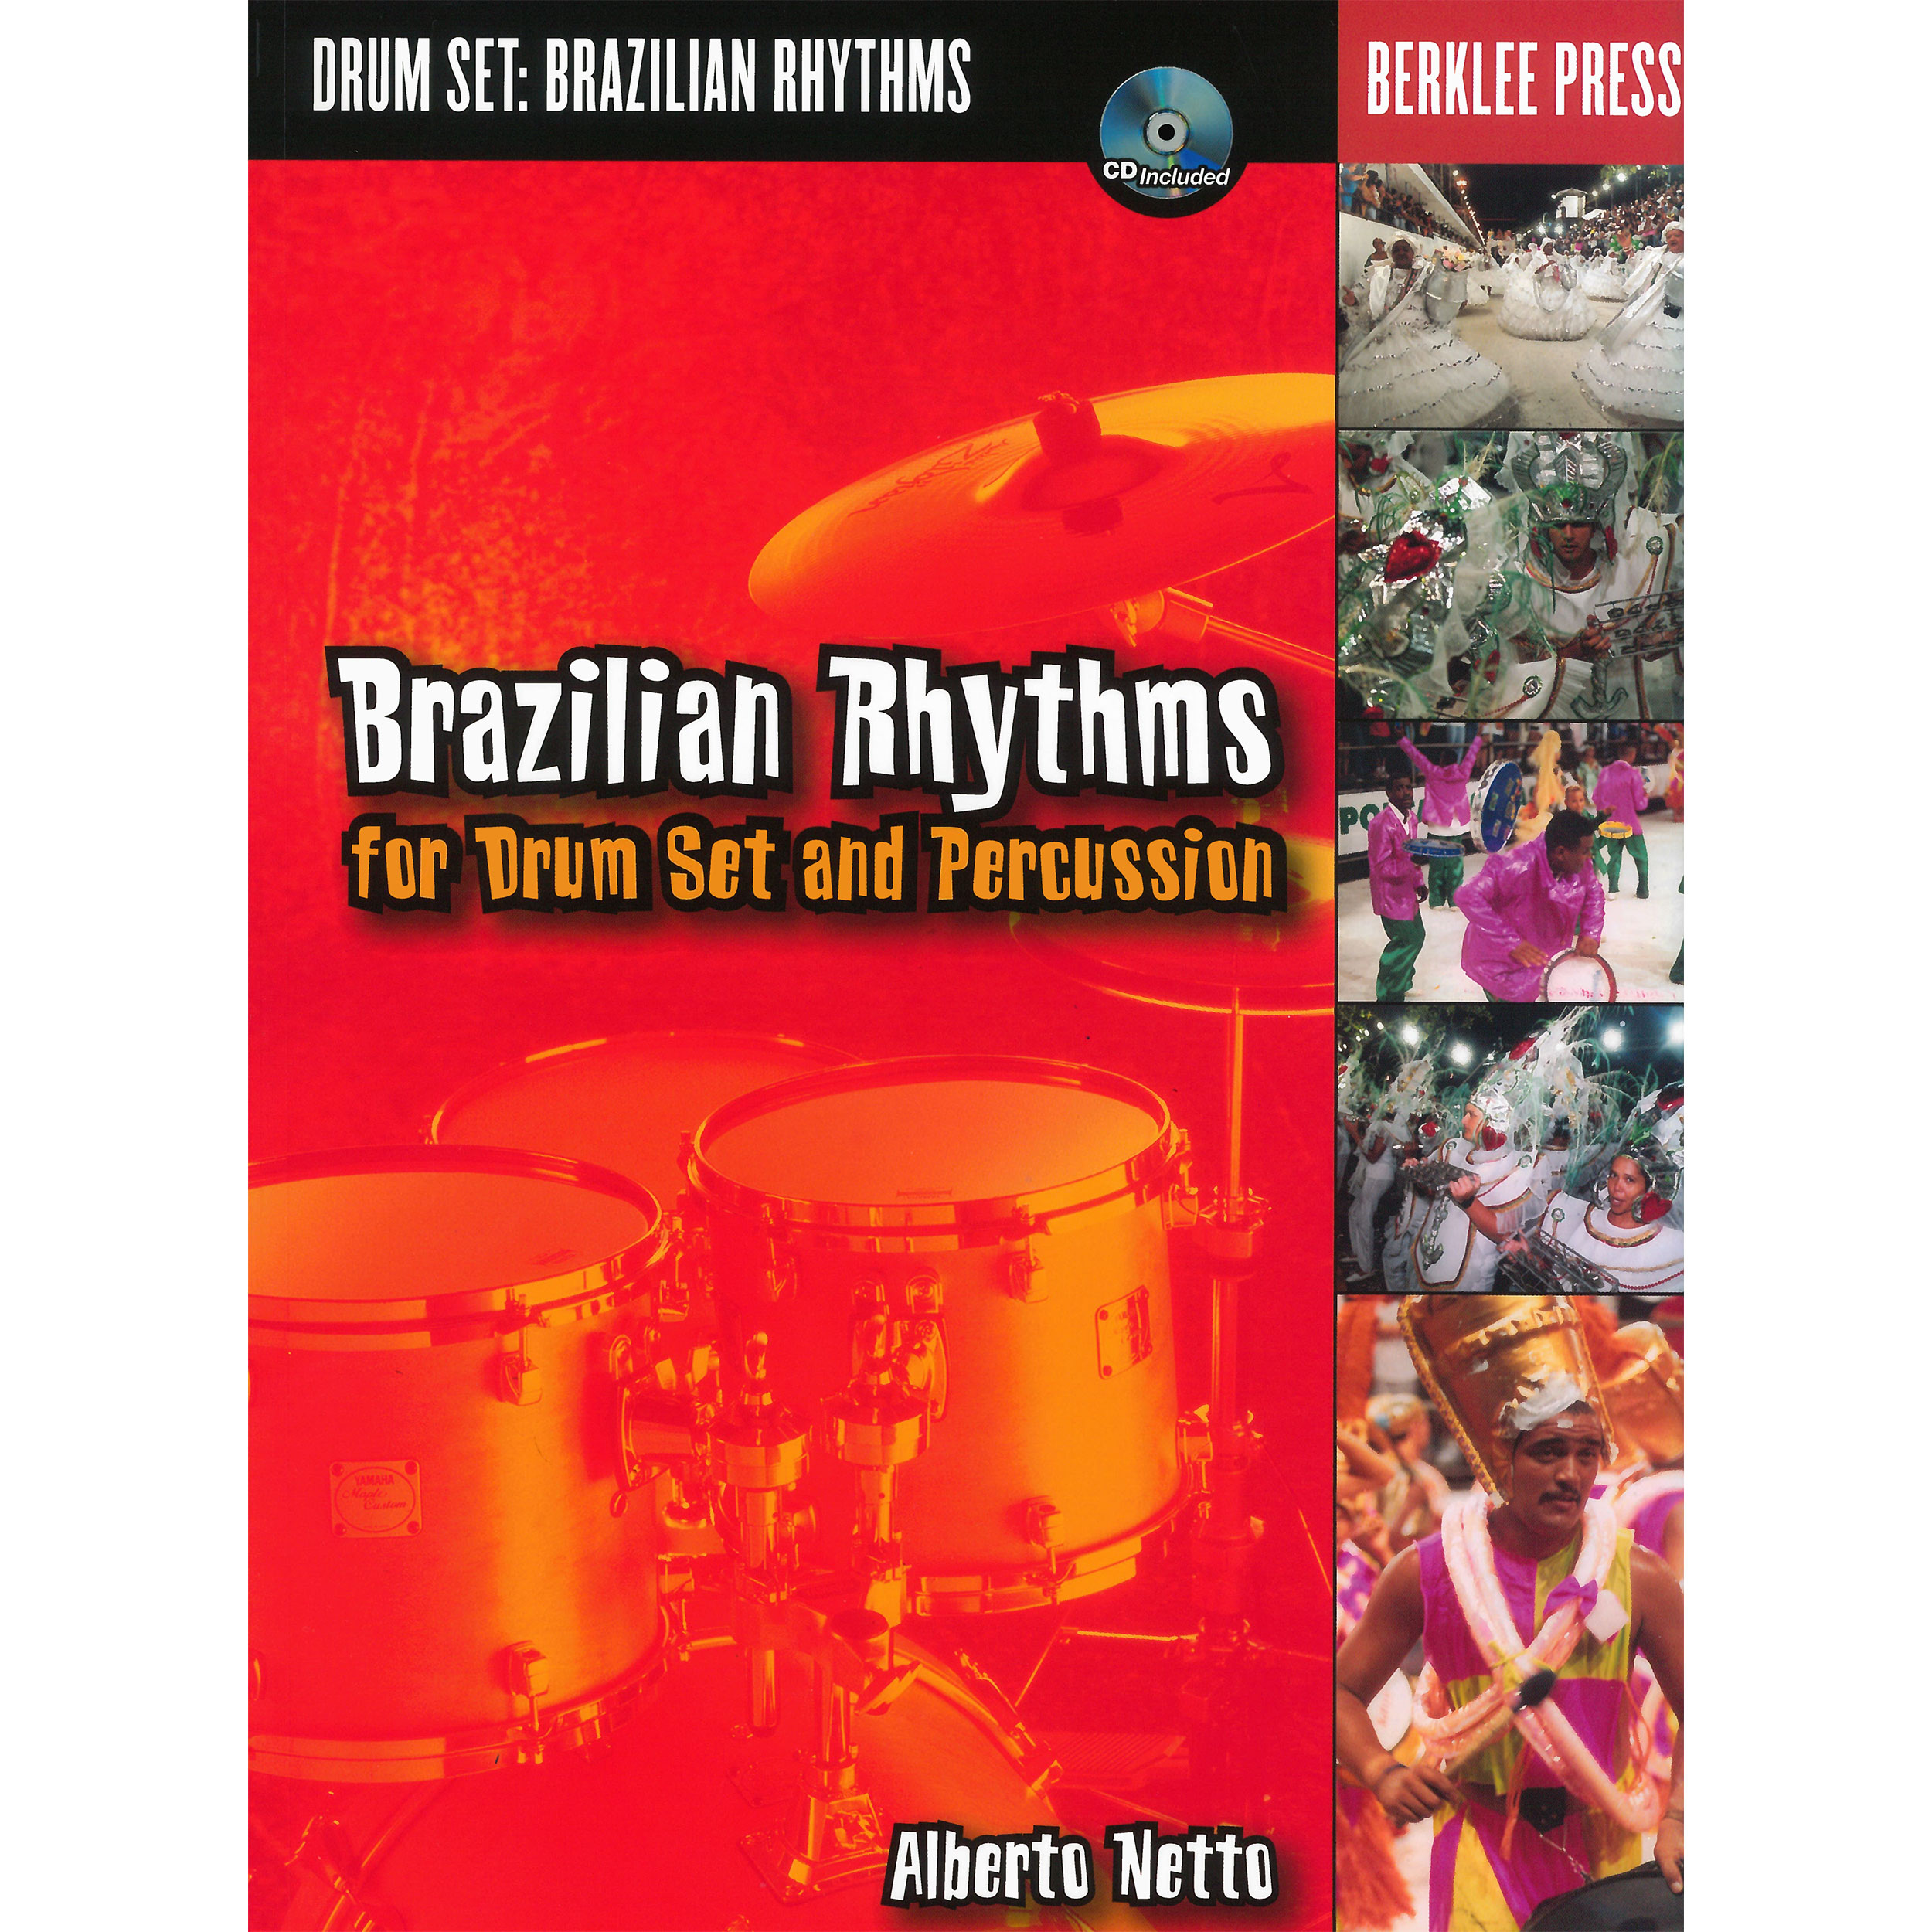 Brazilian Rhythms for Drum Set and Percussion by Alberto Netto